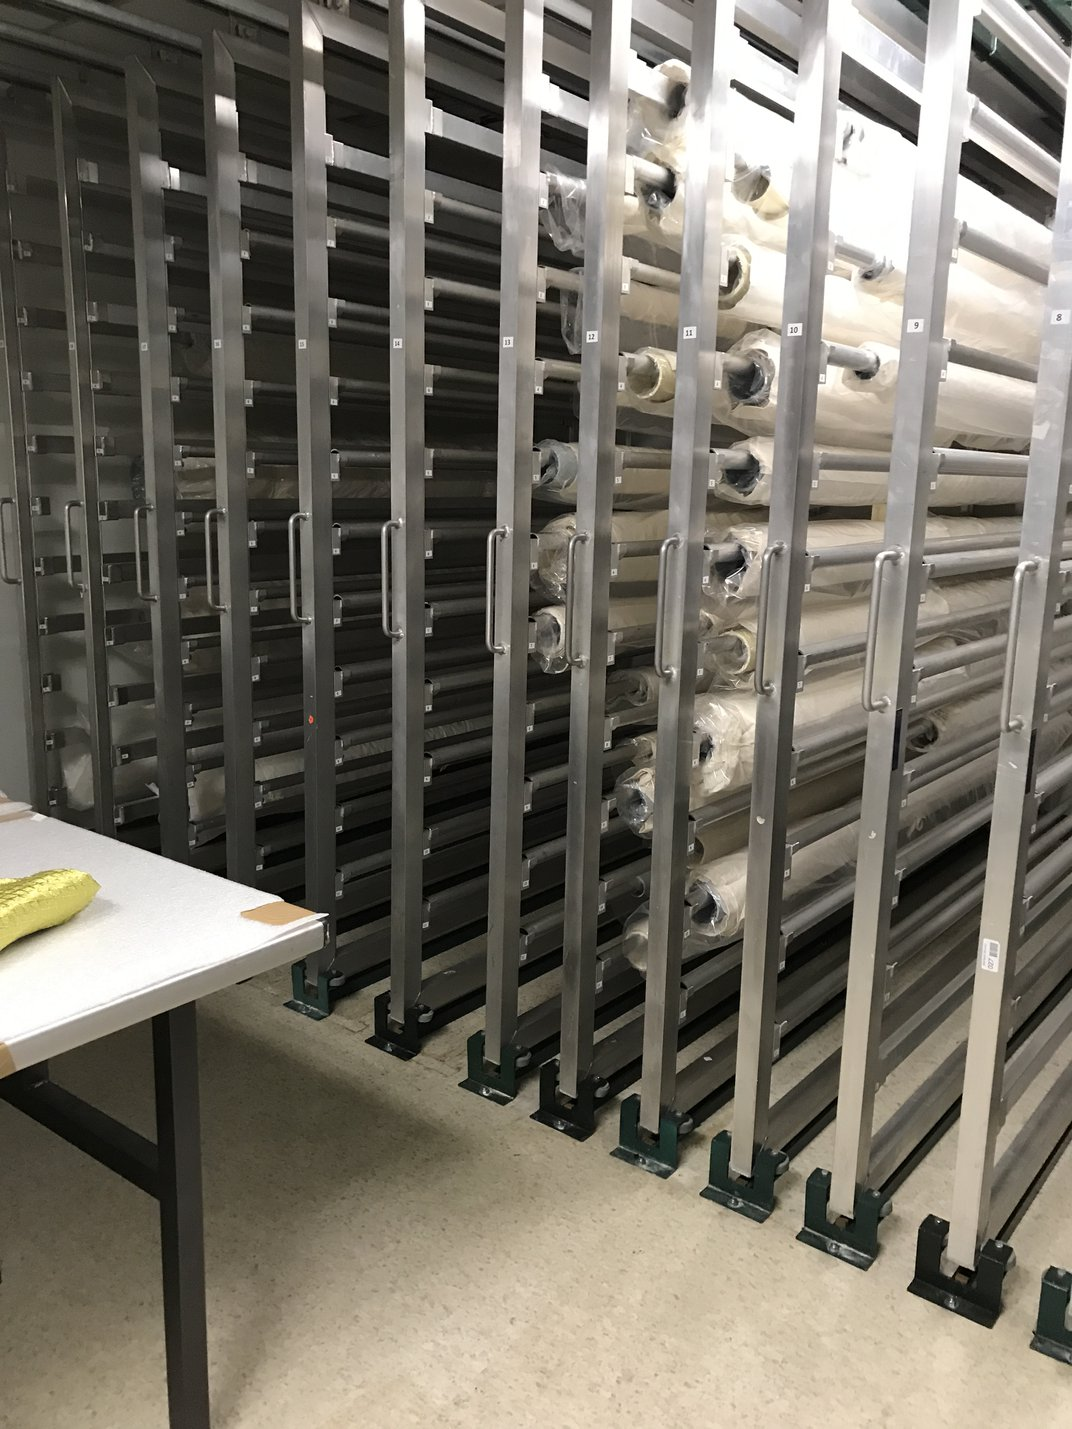 Image of rolled textile storage space at the National Museum of African Art